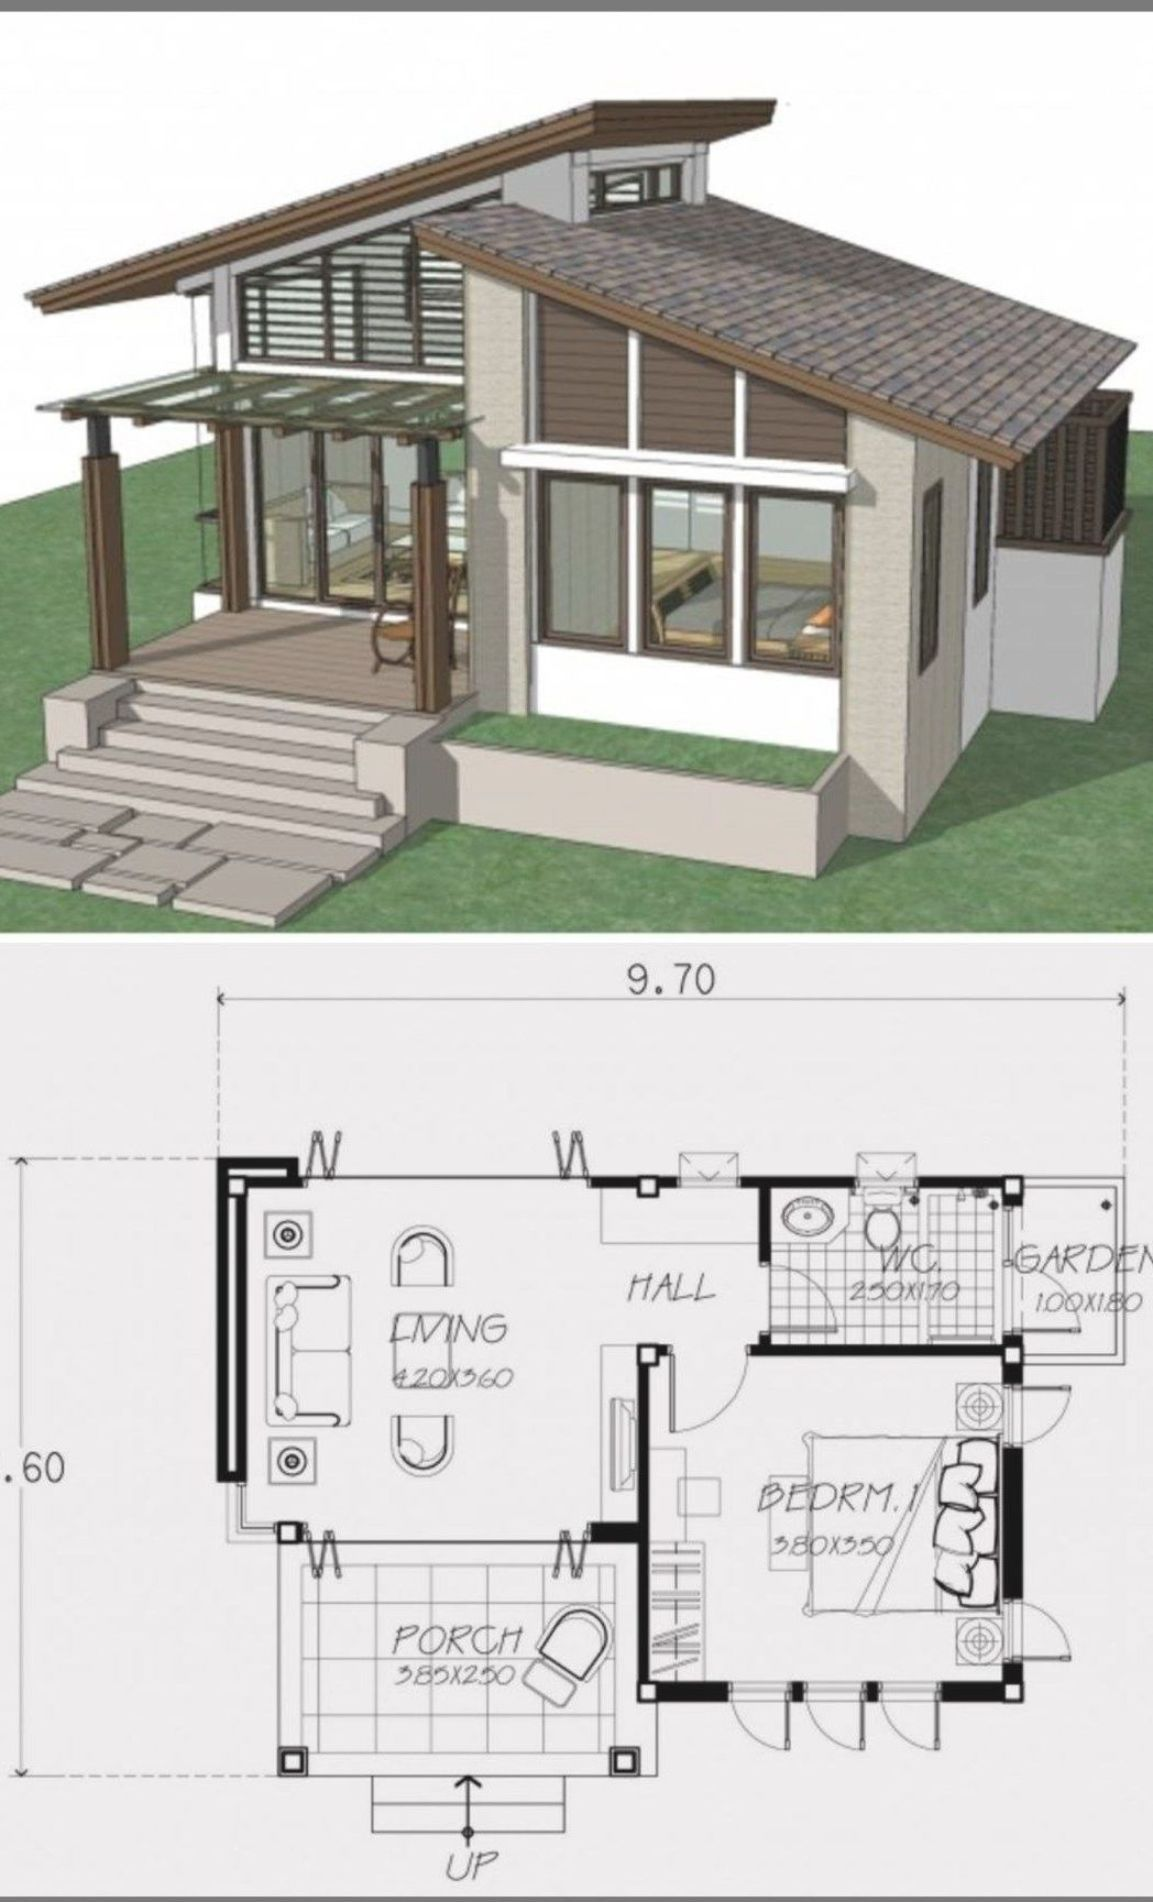 Small Home Design Plan 9x6 6m With One Bedroom Home Design With Plansearch Small House Design Small House Plans Home Design Plan